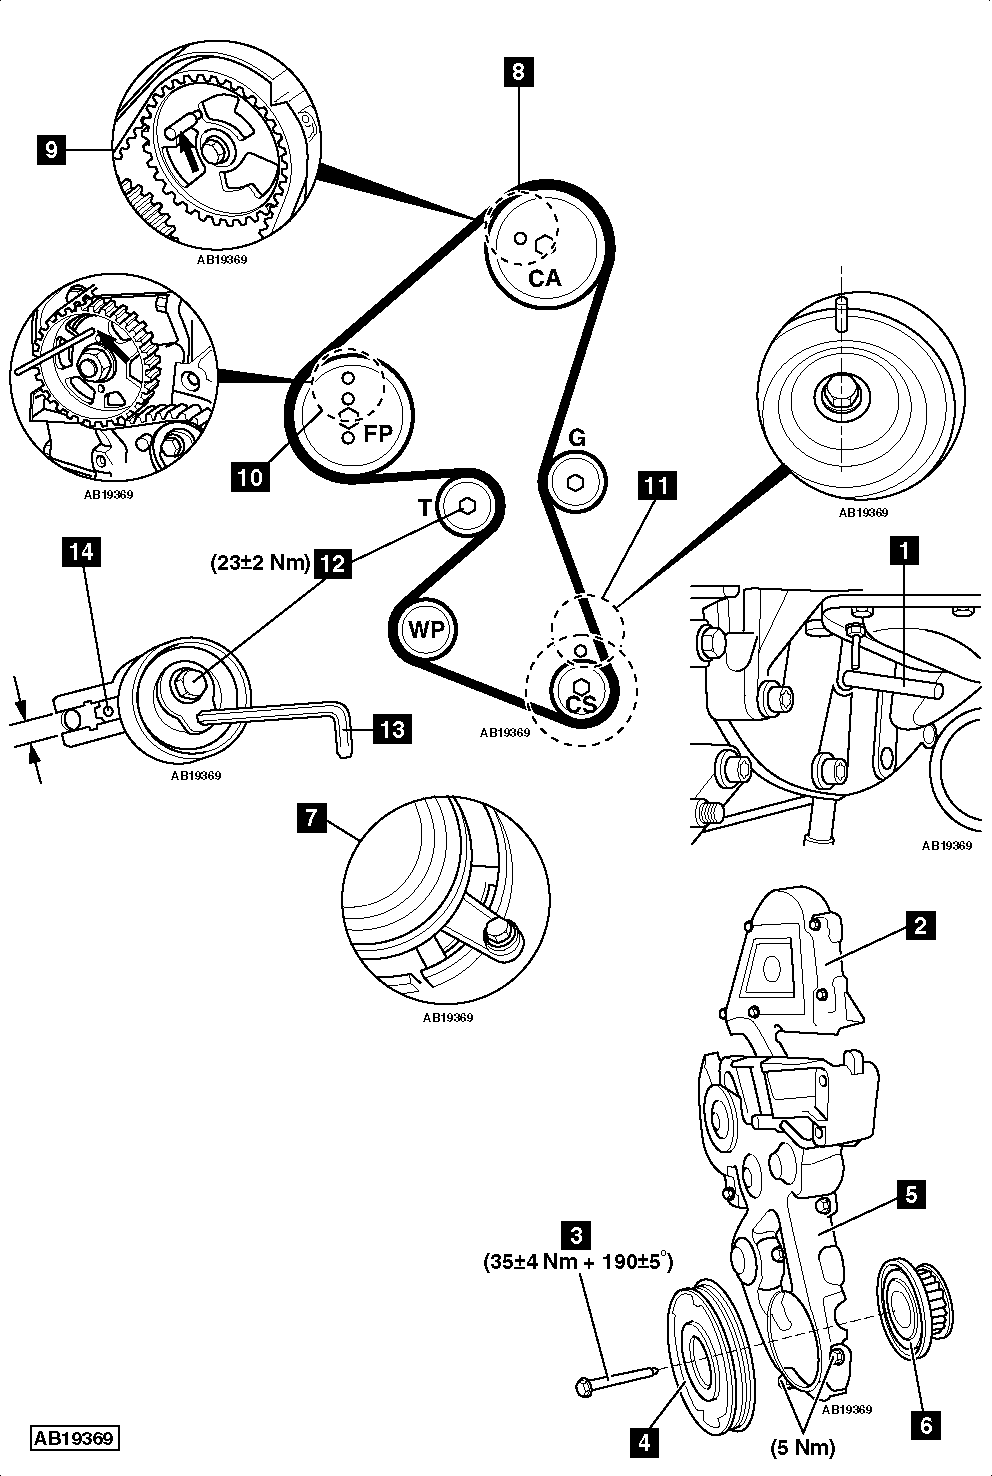 citroen c4 1 6 hdi wiring diagram